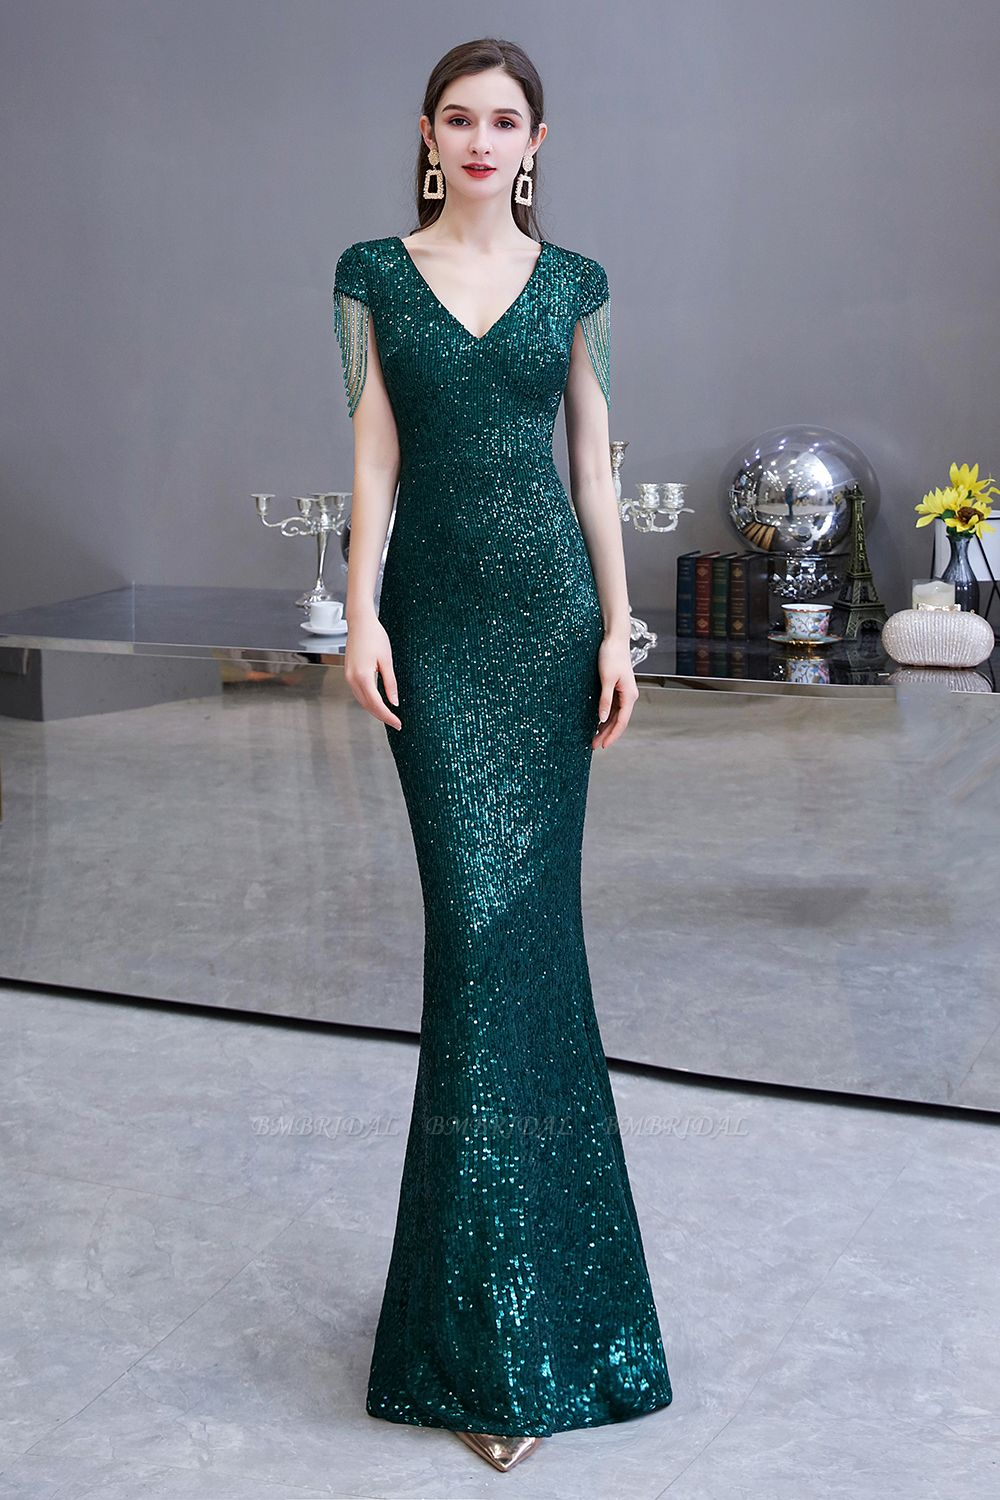 BMbridal Elegant Cap Sleeve Green Prom Dress Sequins Long Evening Gowns Online